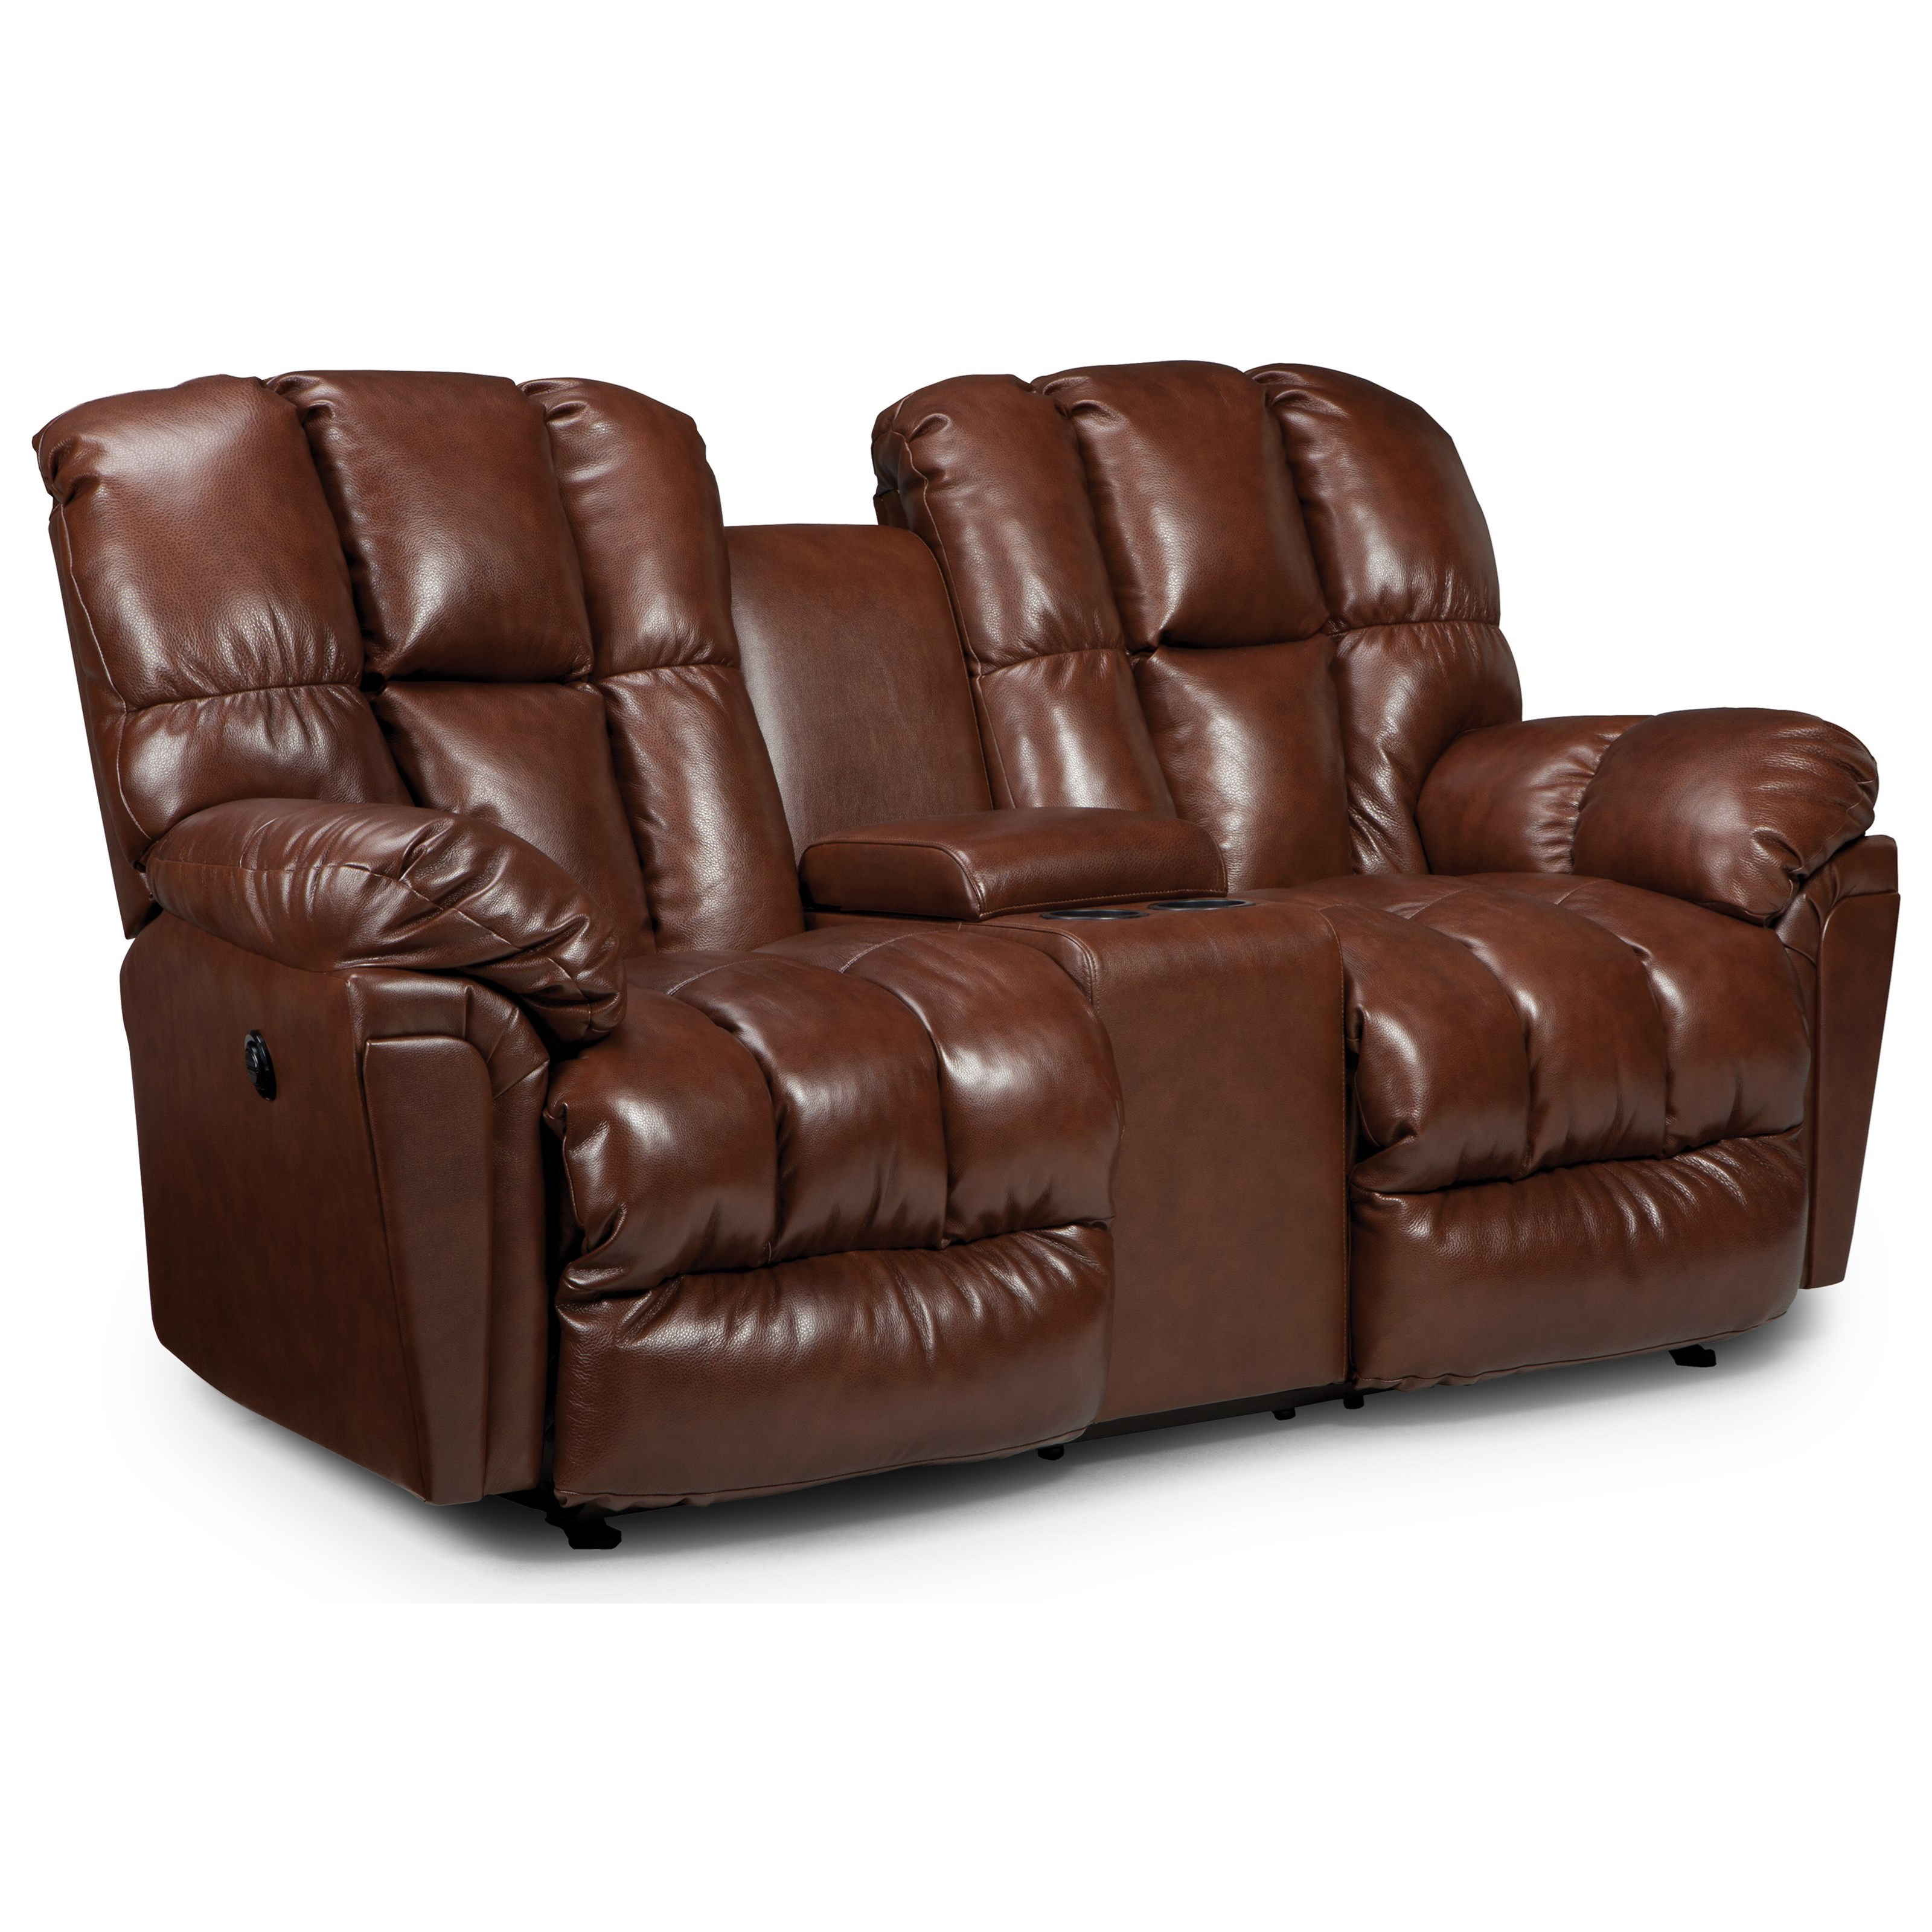 Best Home Furnishings Lucas Rocking Reclining Loveseat w/ Console - Item Number: L856CC7 01